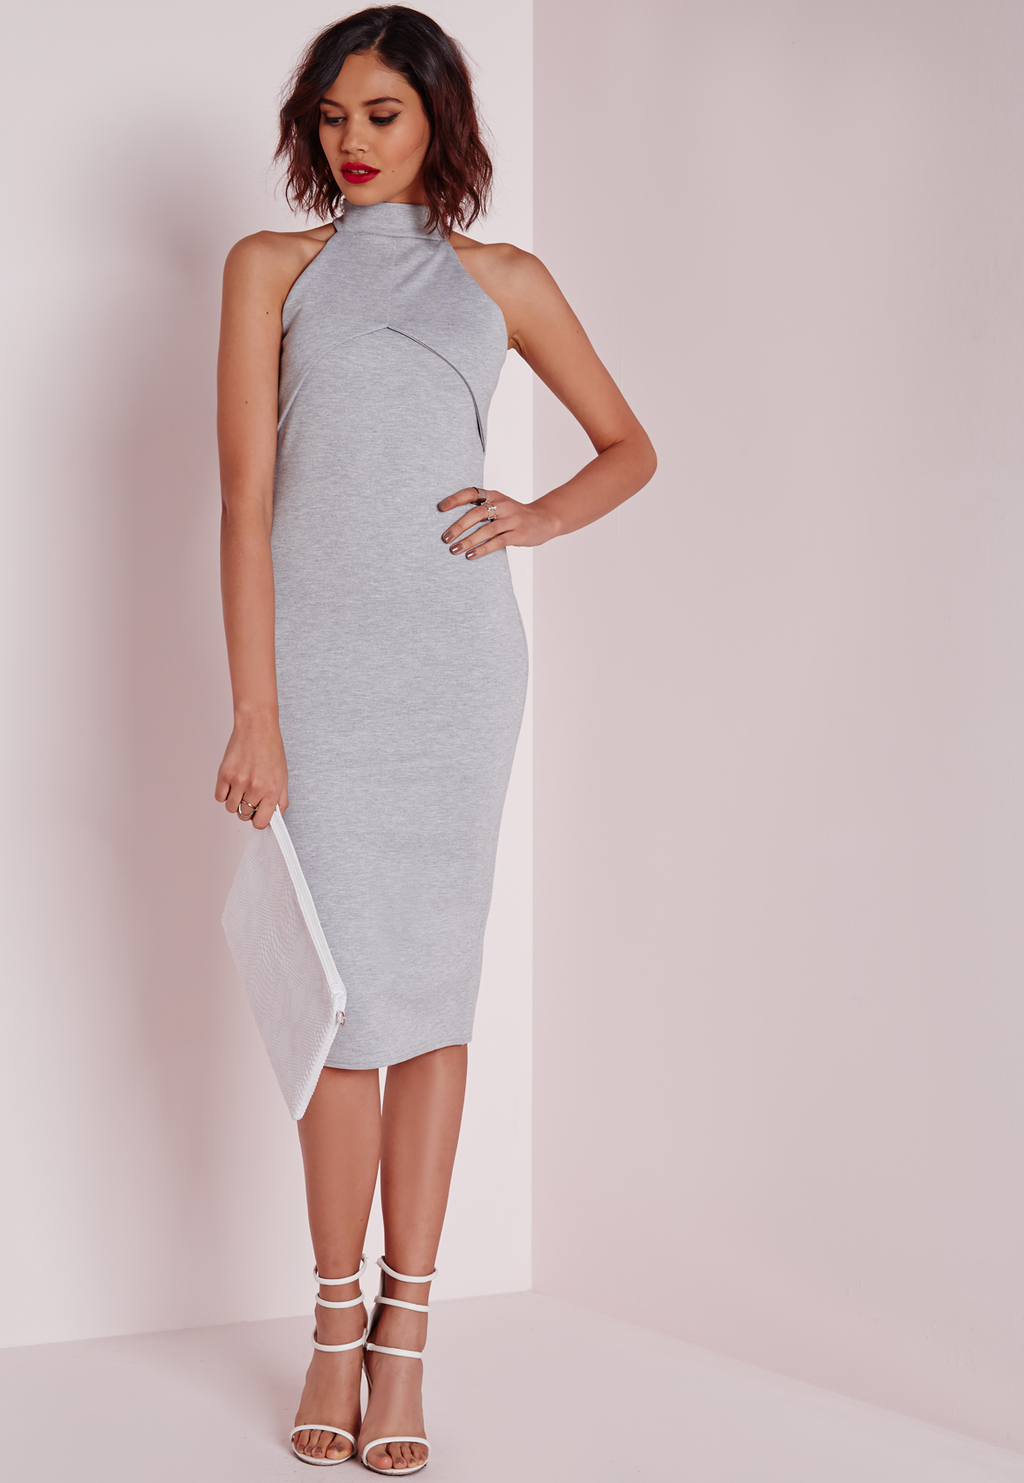 High Neck Midi Dress Grey, Grey - length: below the knee; fit: tight; pattern: plain; sleeve style: sleeveless; neckline: high neck; style: bodycon; predominant colour: light grey; occasions: evening; fibres: polyester/polyamide - stretch; sleeve length: sleeveless; texture group: jersey - clingy; pattern type: fabric; season: a/w 2015